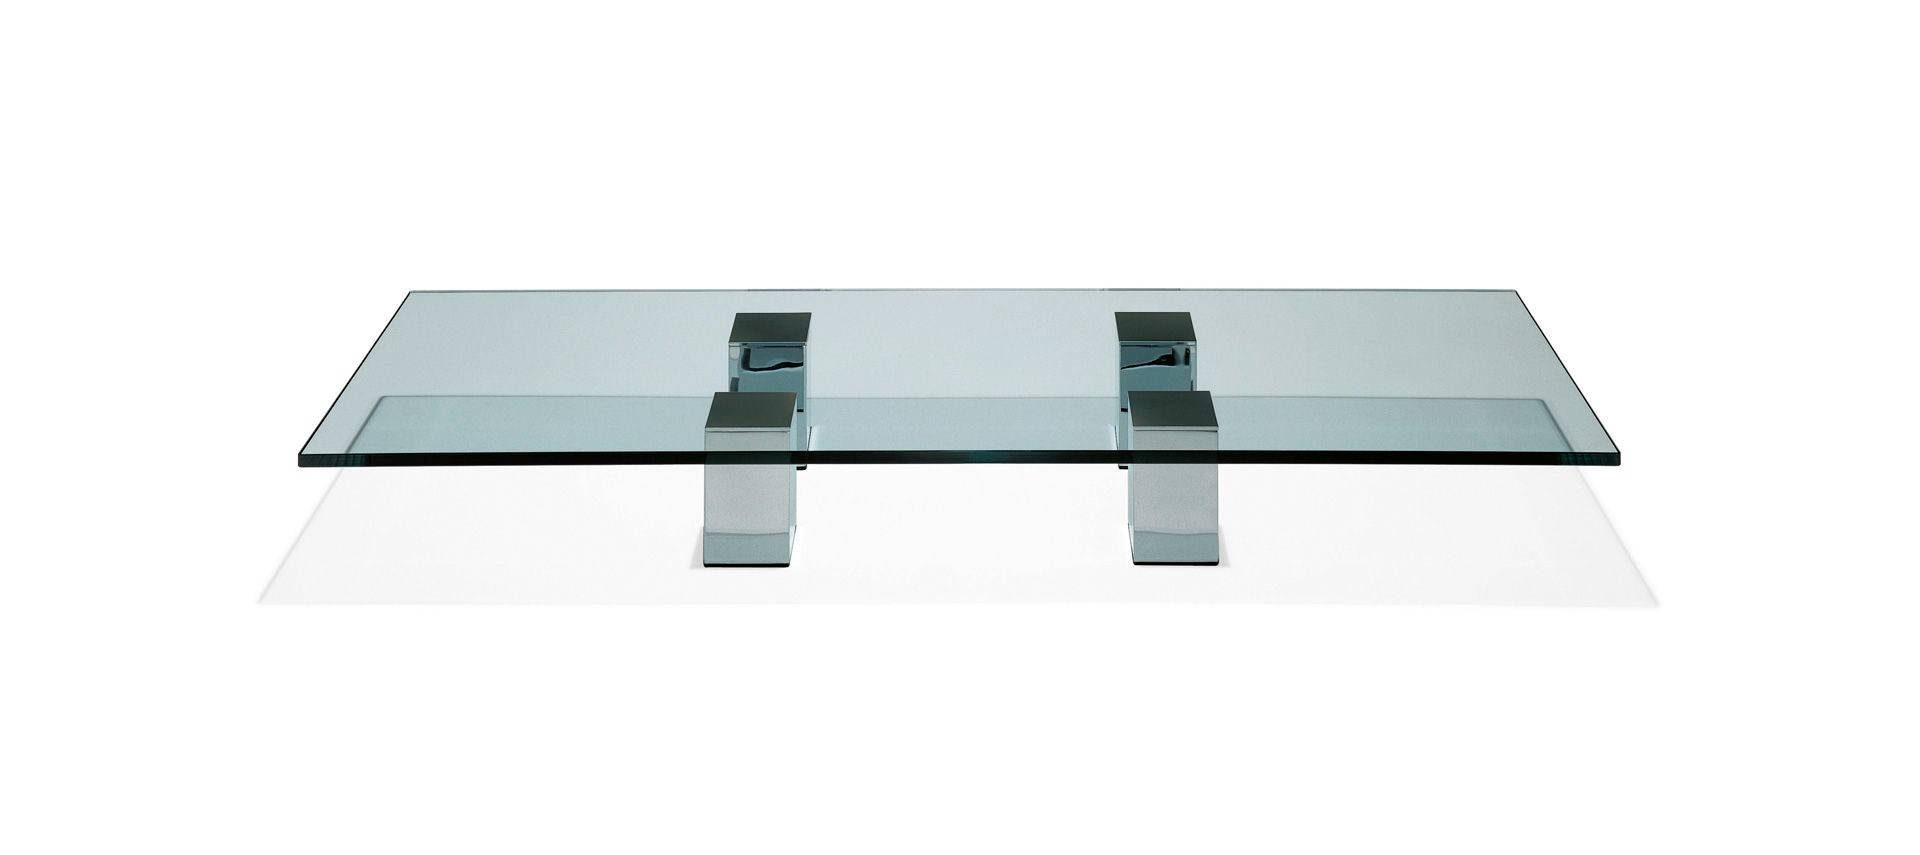 Furniture. Contemporary Glass Coffee Tables Ideas: Clear Low for Low Coffee Tables With Storage (Image 14 of 30)